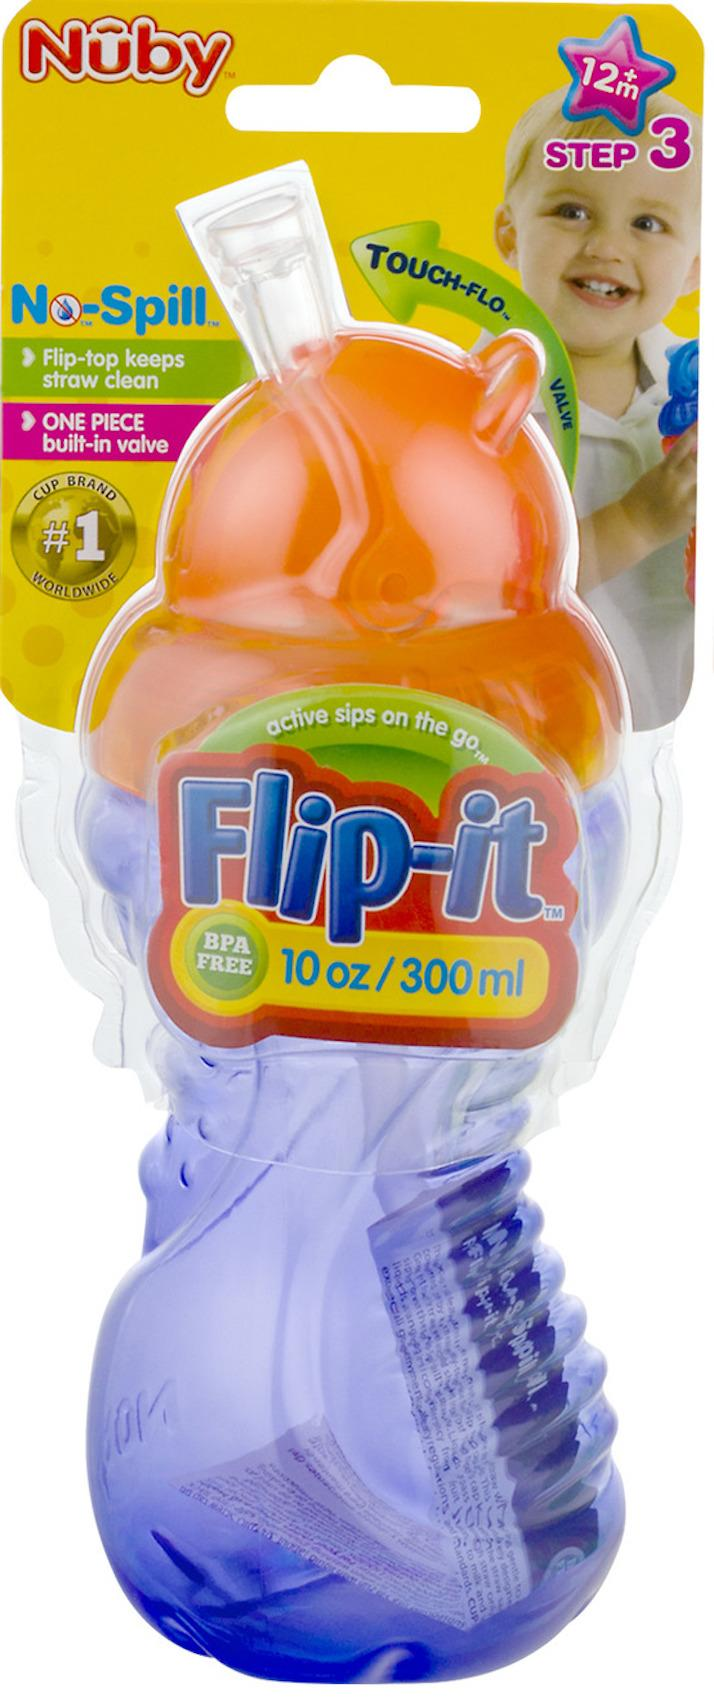 Feeding Cups For Sale Baby Cup Online Brands Prices Boon Sippy Tall 10oz Green Nuby Flip It Easy Grip With Flo Straw 10 Oz